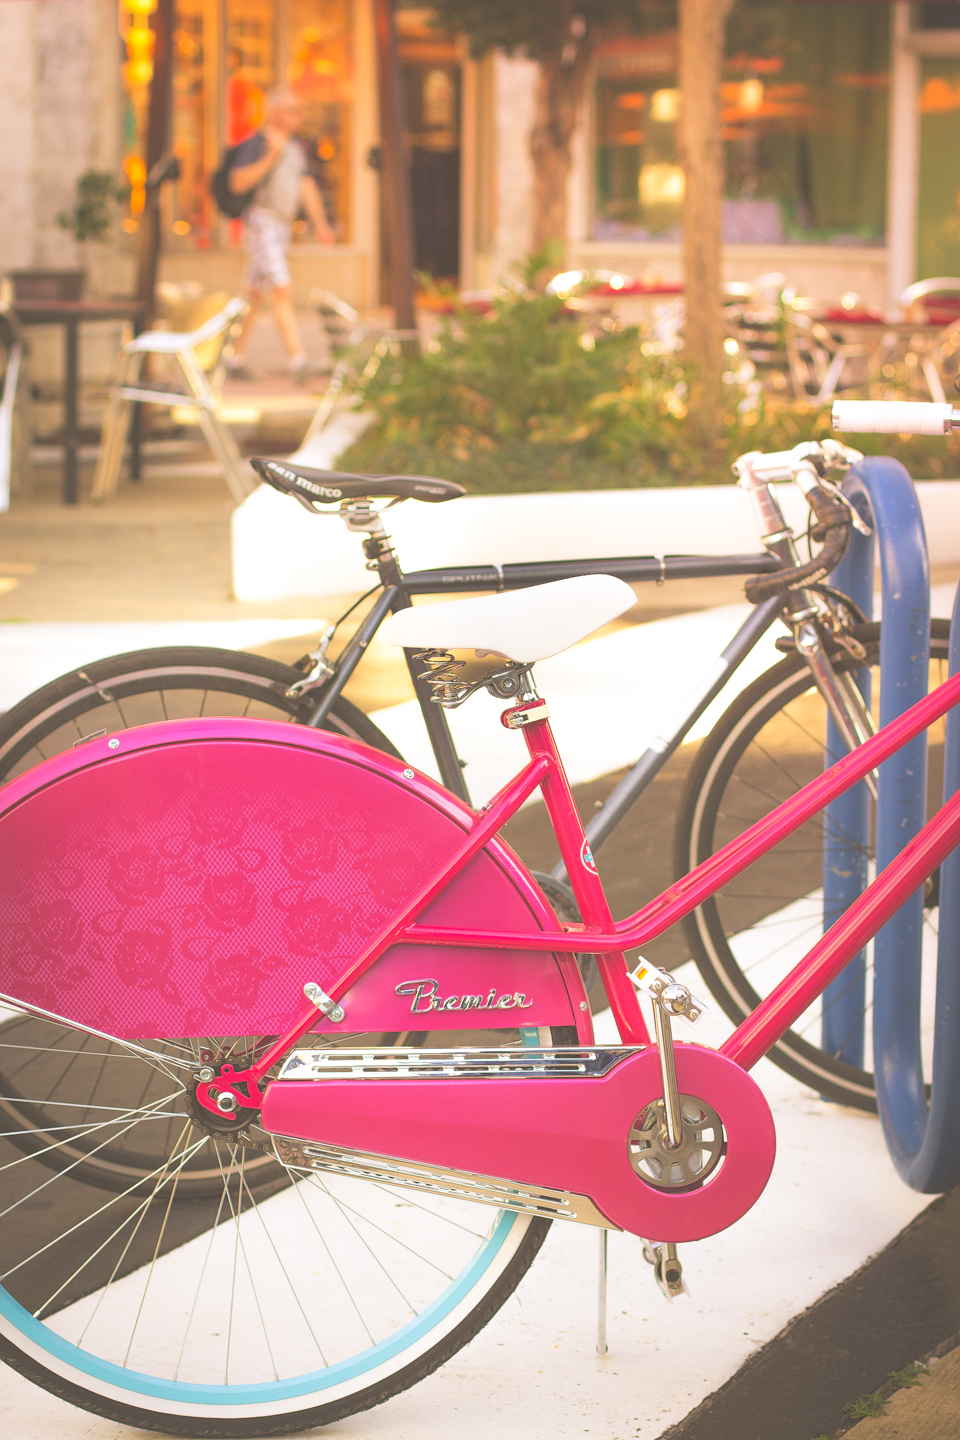 I fell in love with this bright pink bike I spotted walking in Lincoln Road, Miami Beach, FL.